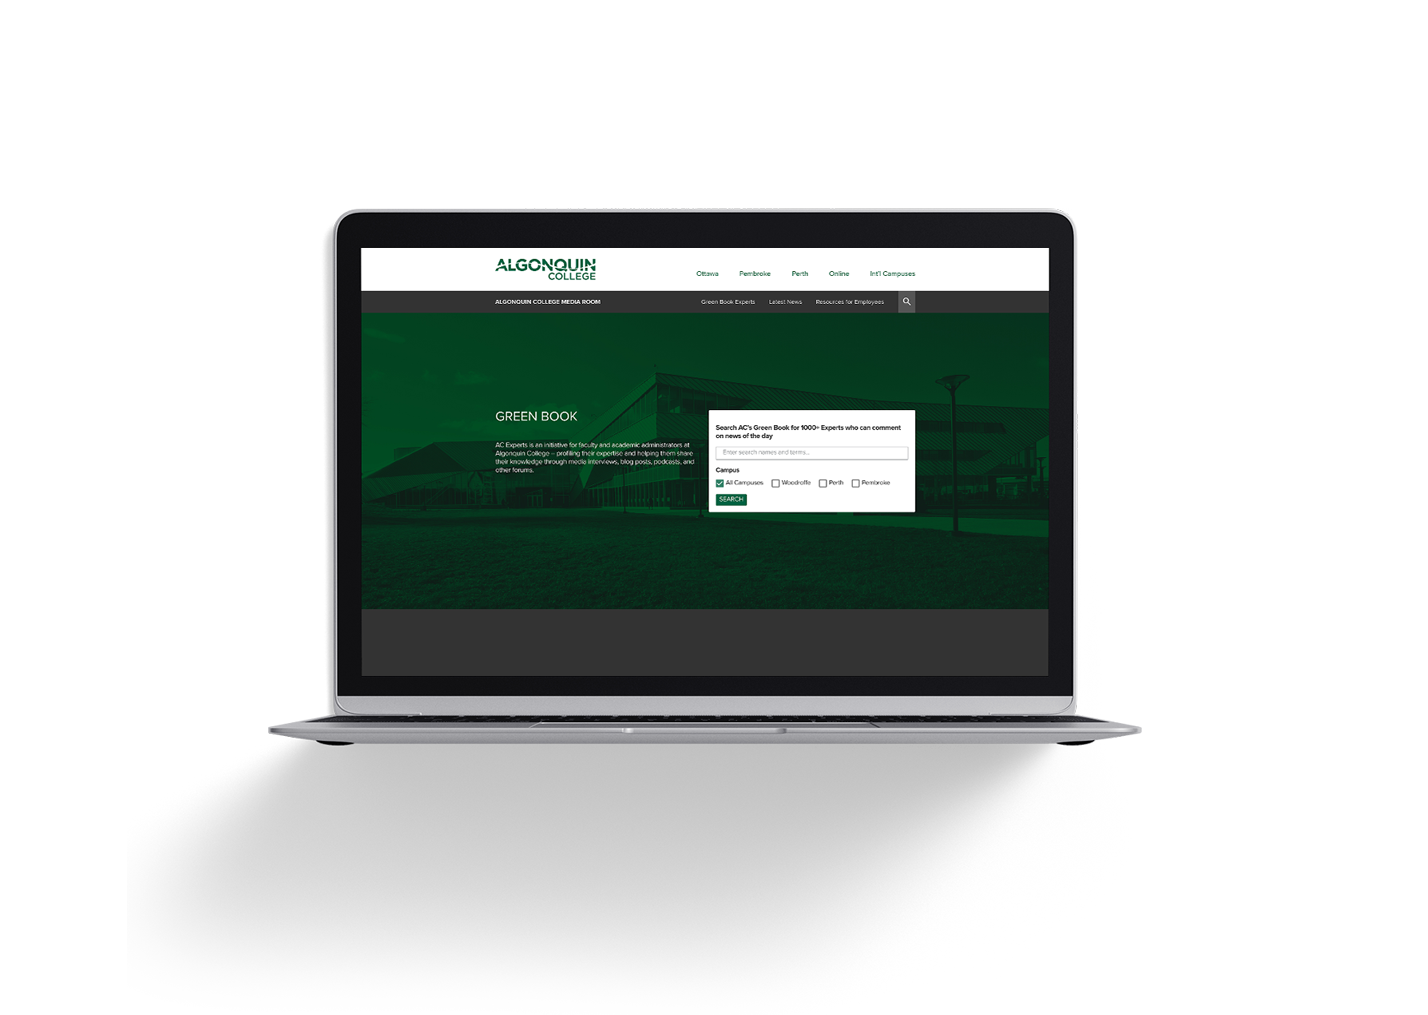 Algonquin College Greenbook website mockup on laptop screen